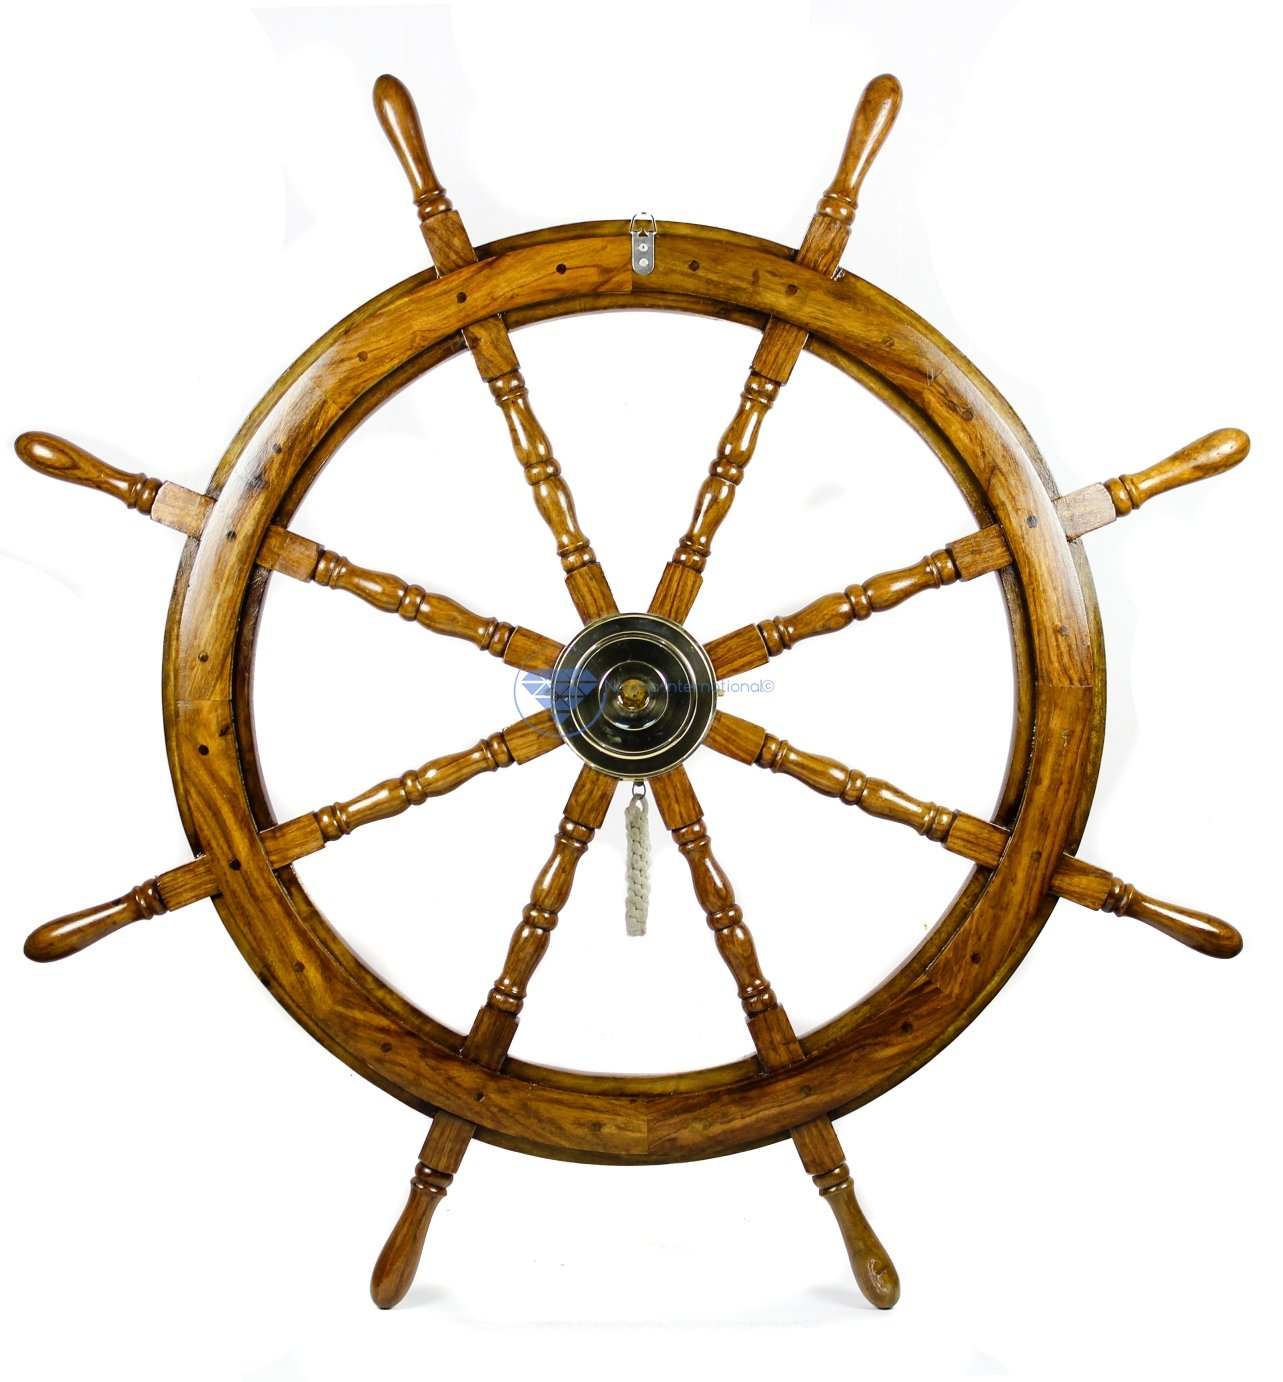 Wooden Handcrafted Premium Wood Nautical Ship Wheel With Brass Wheel-Bell | Pirate's Beach Home Decor Gift | Nagina International (36 Inches)